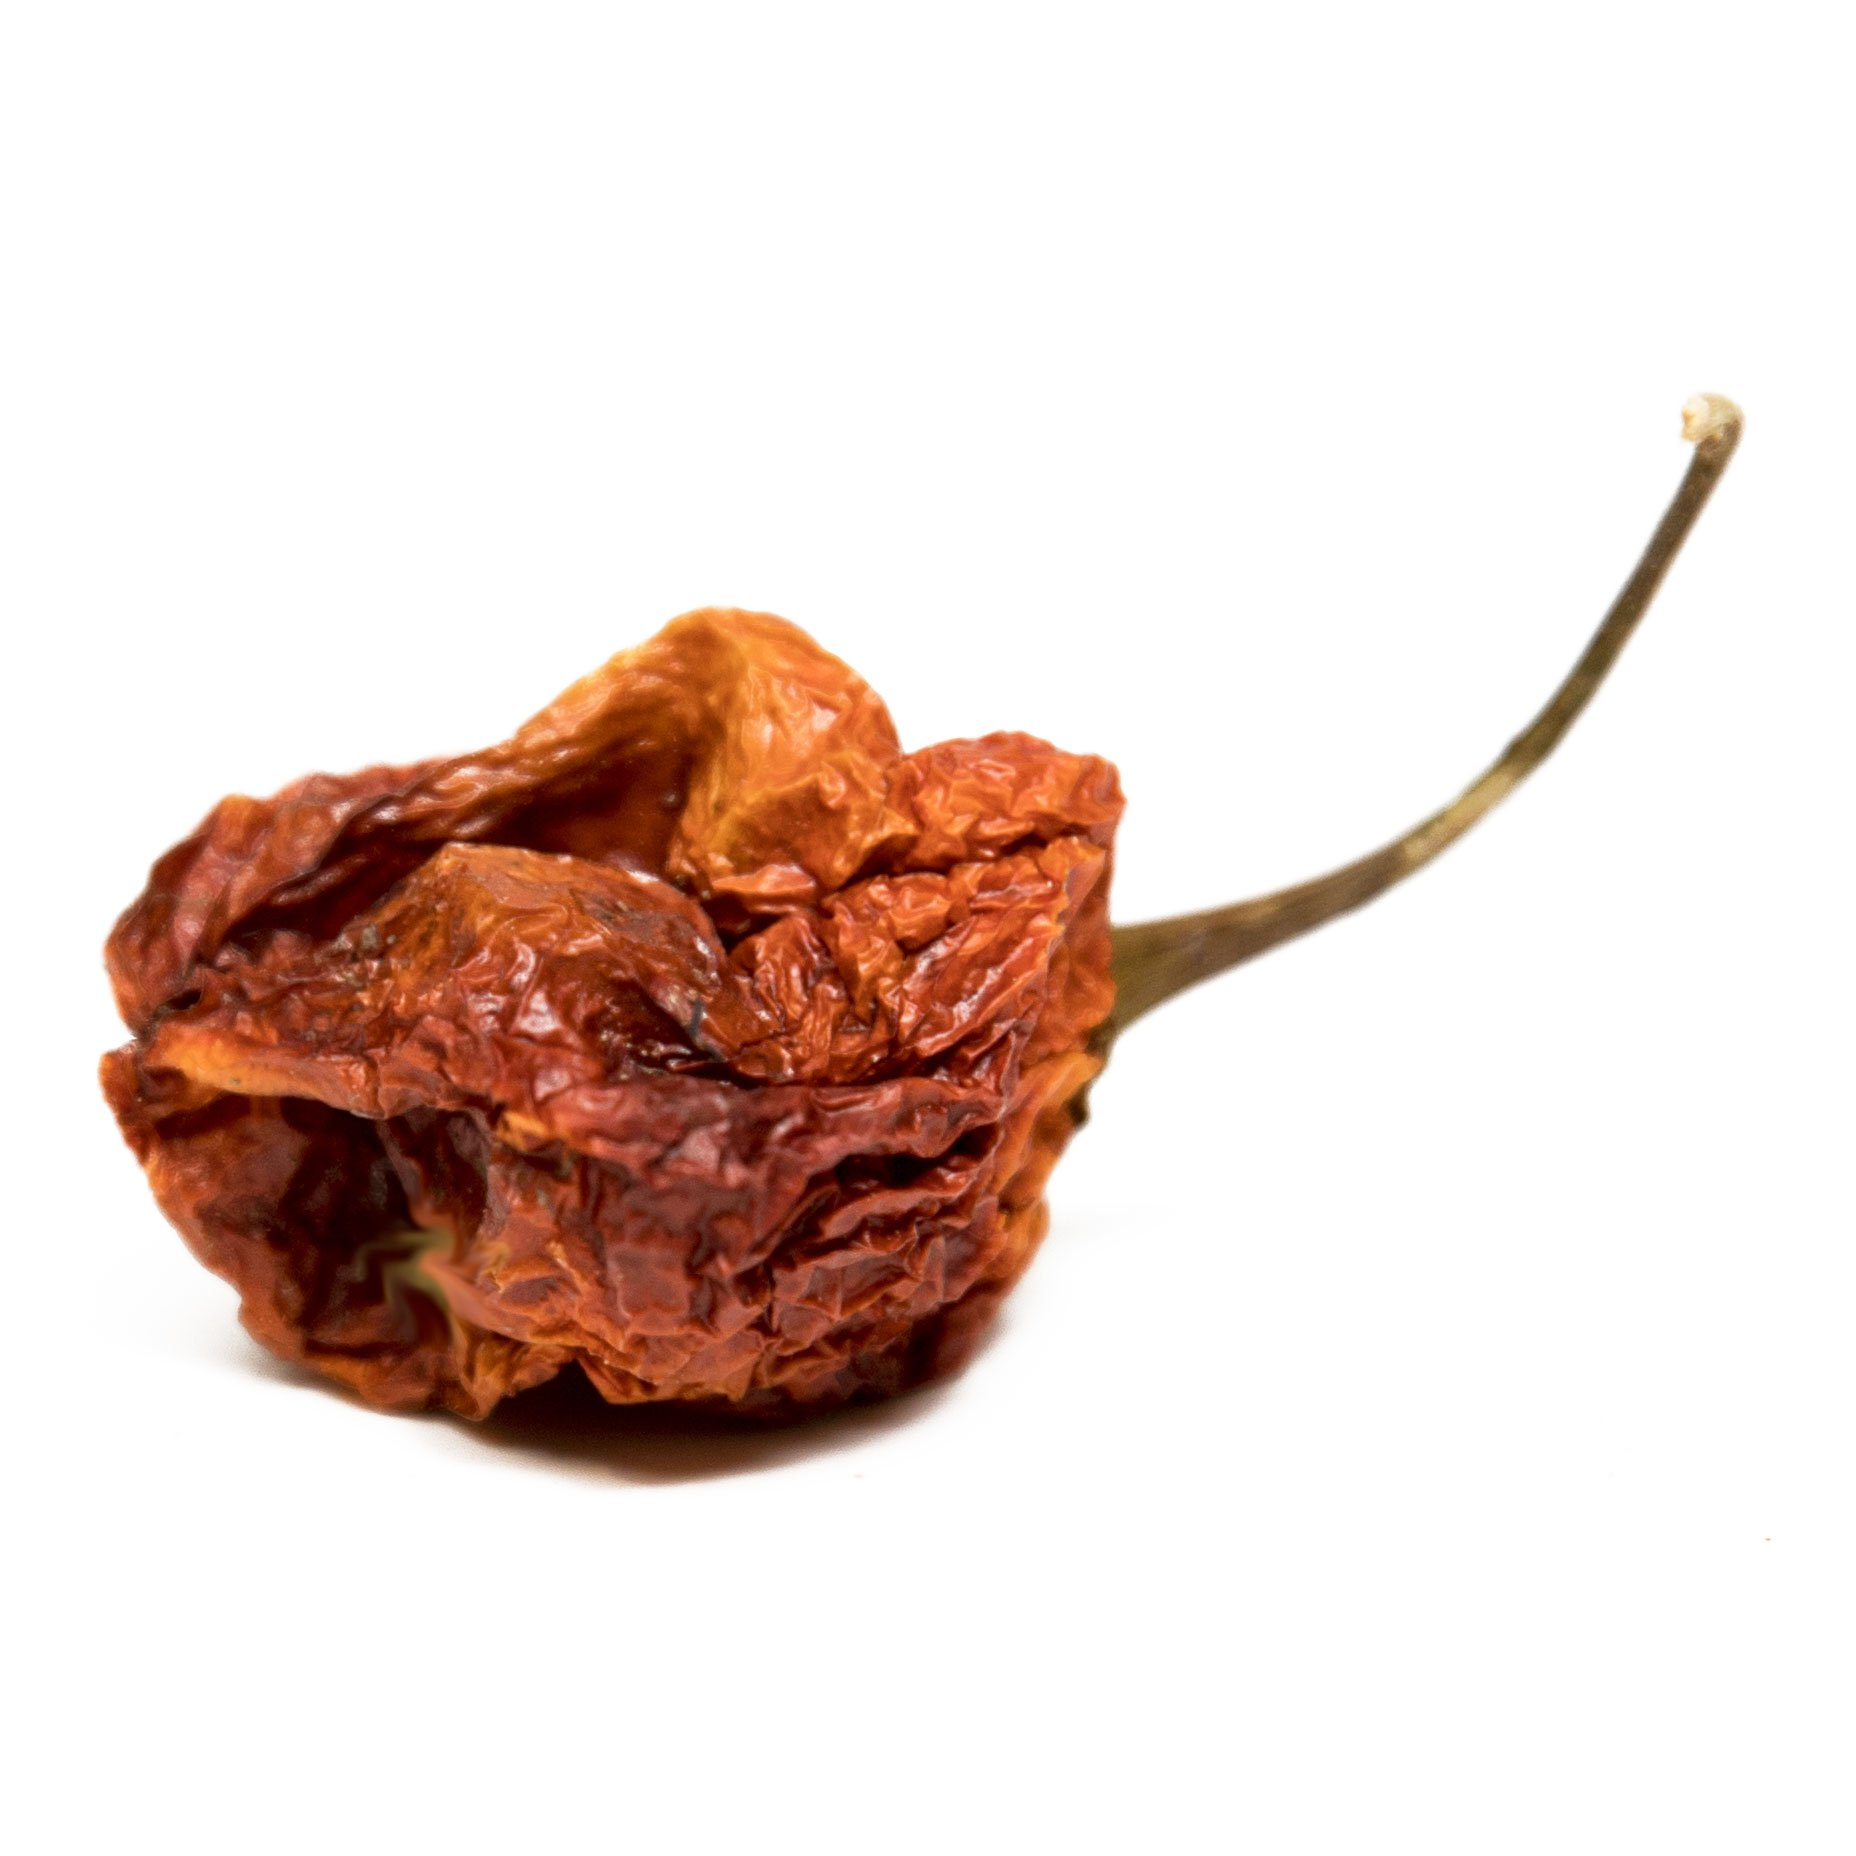 Carolina Reaper Peppers - Oven Dried (4 Oz) by Sonoran Spice (Image #2)